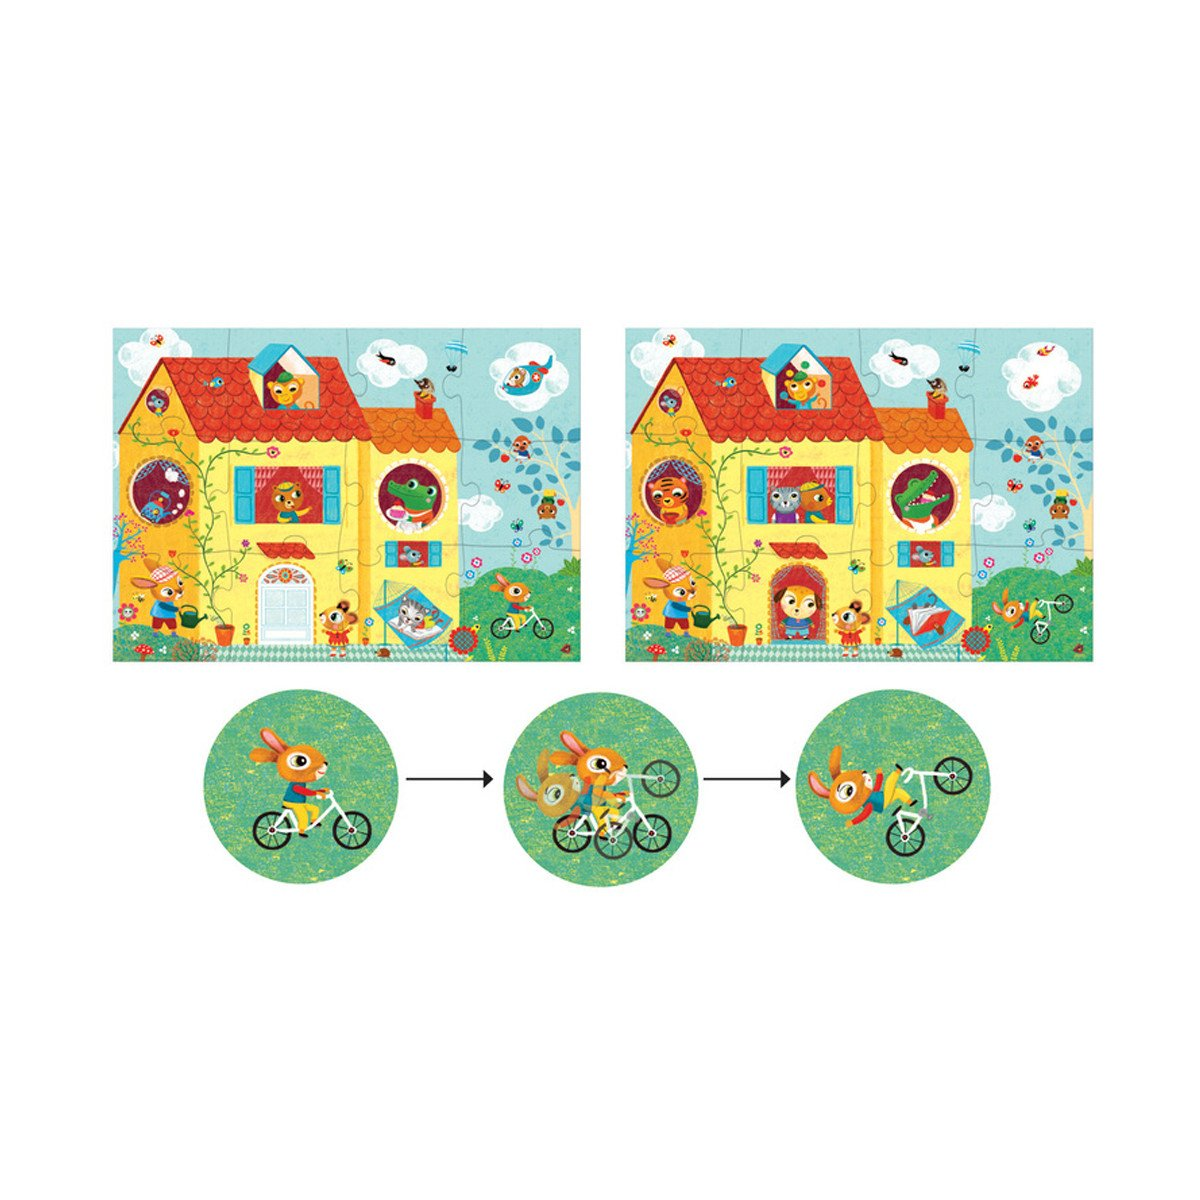 Djeco Giant Puzzle The House Djeco Puzzles at Little Earth Nest Eco Shop